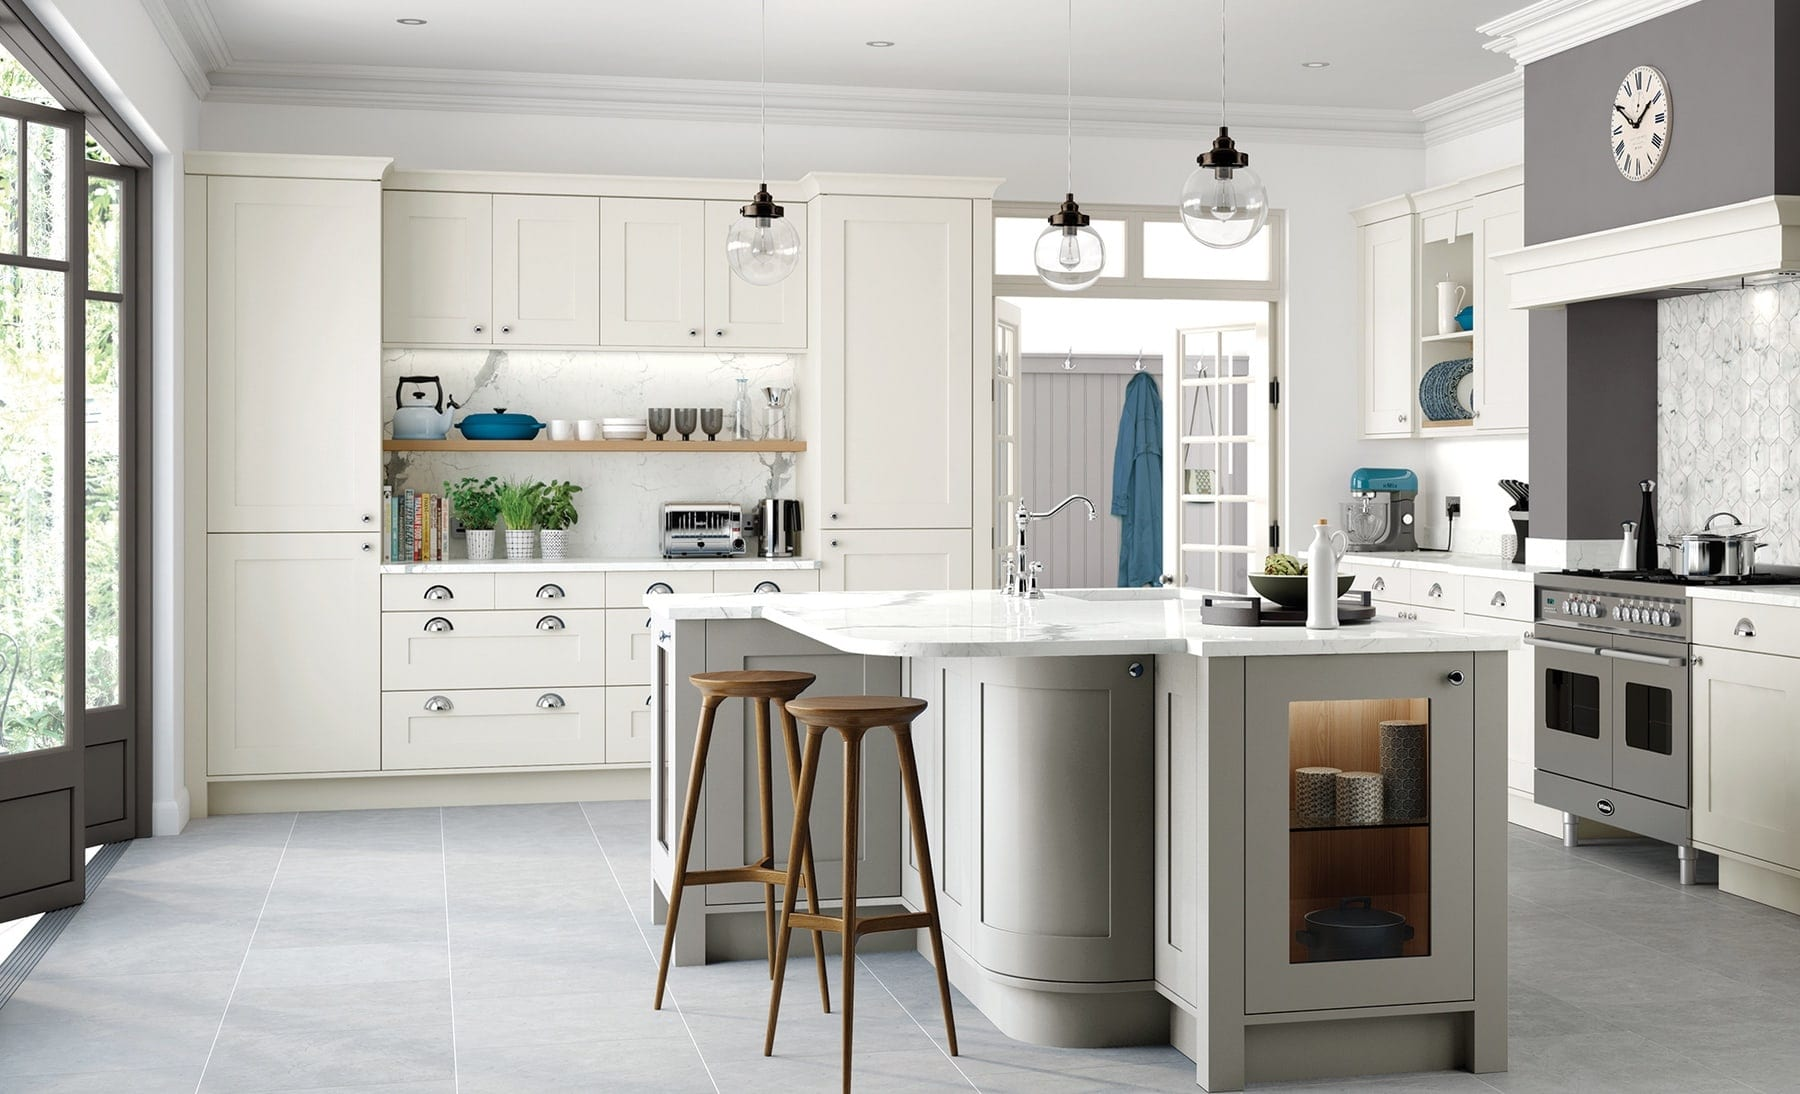 Georgia Porcelain And Stone Shaker Kitchen With Island   Colour House Interiors, Caterham